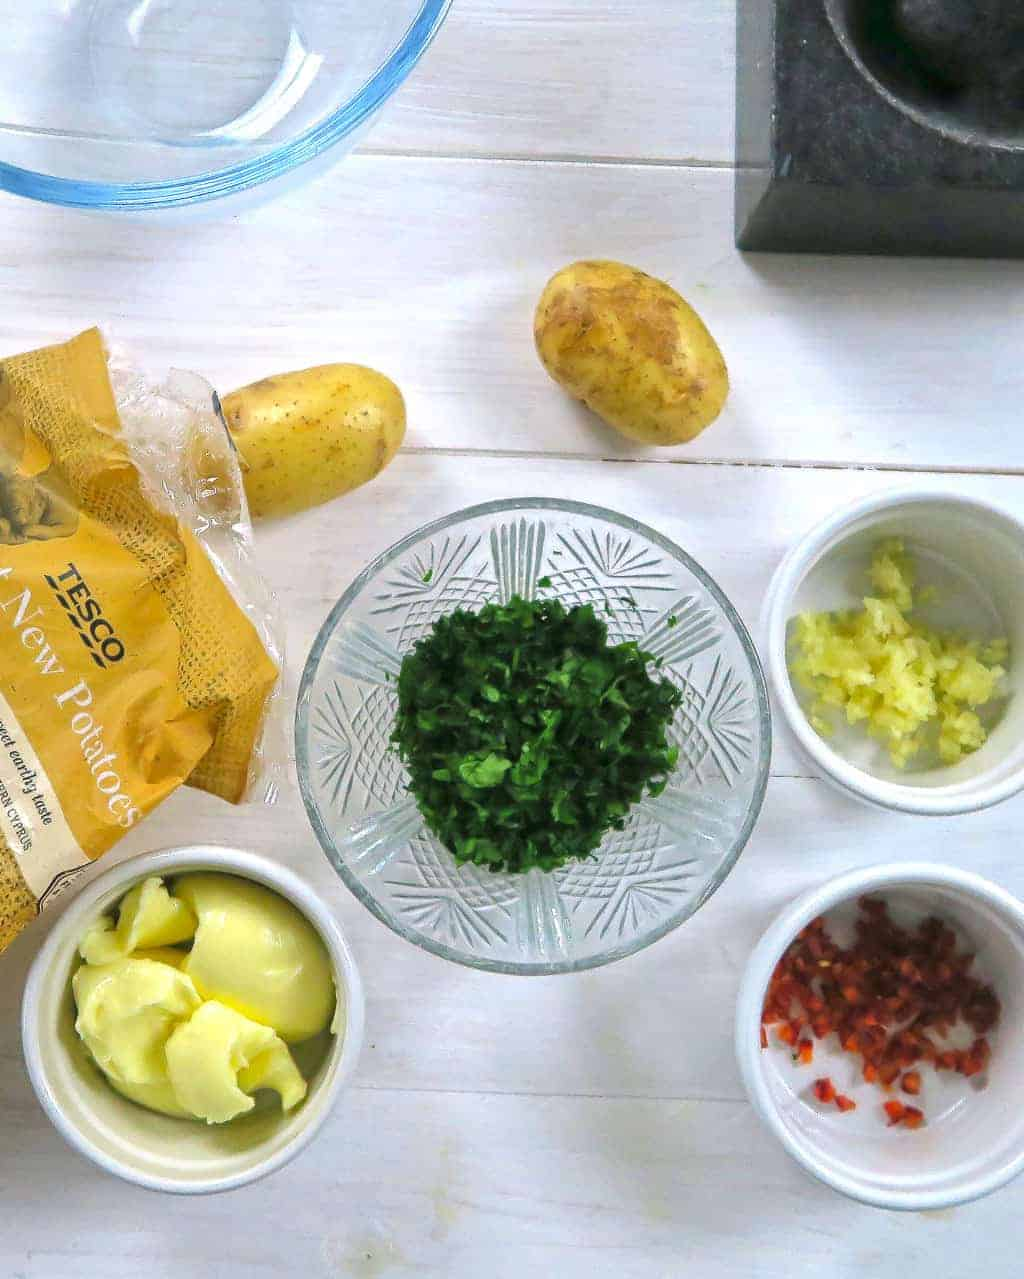 Ingredients for Mini Hasselback Potatoes with Garlic and Chilli